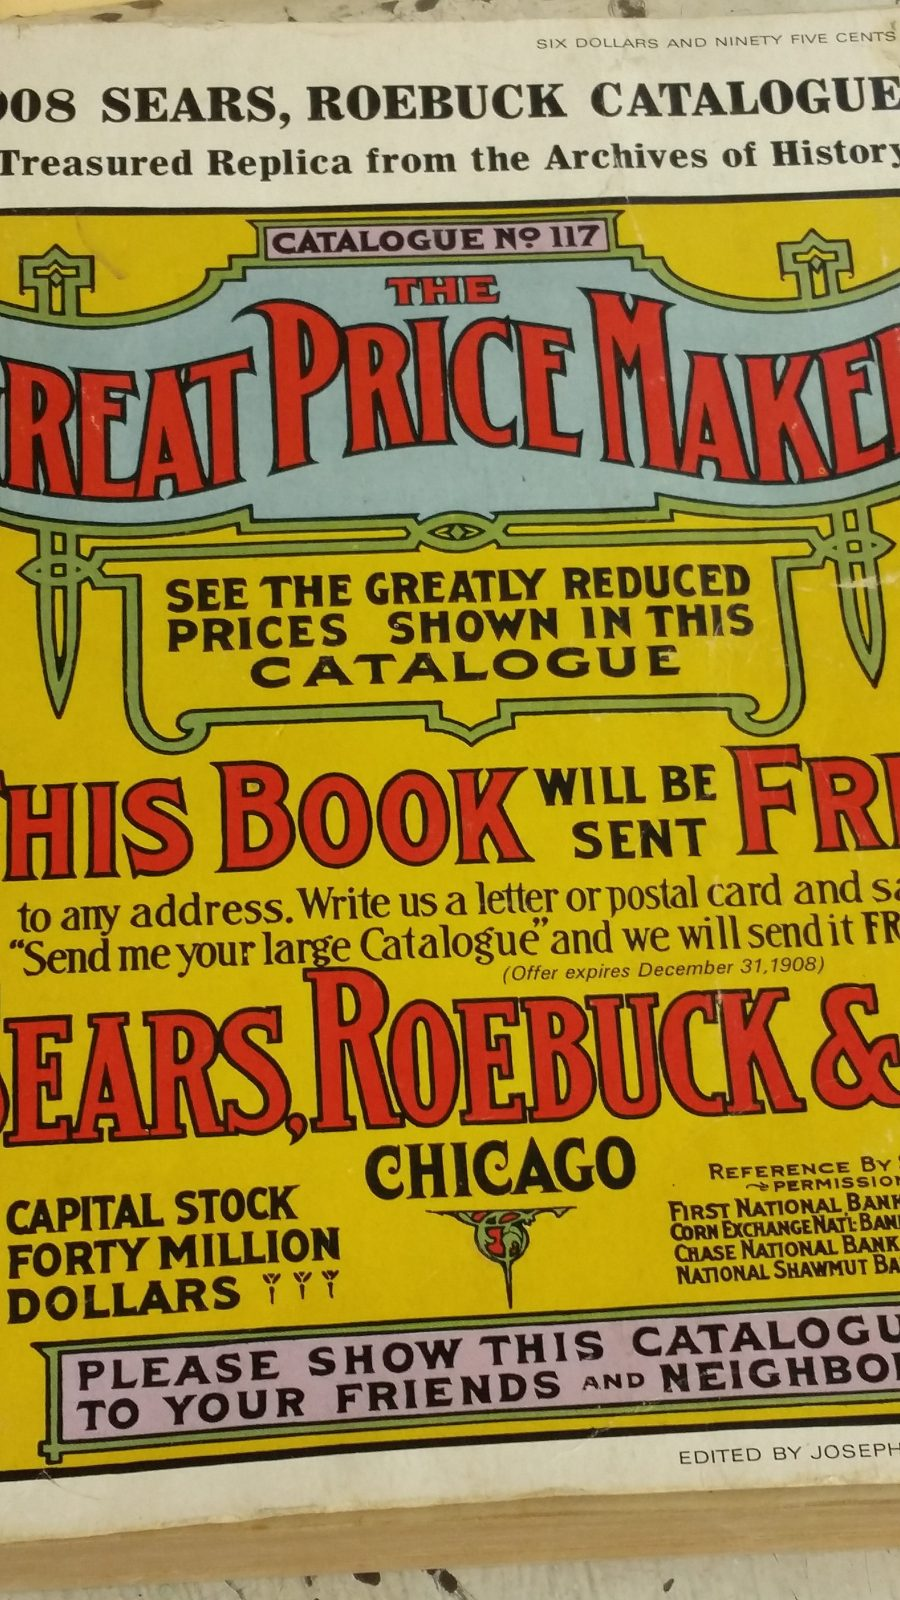 1908 Sears Roebuck Catalog